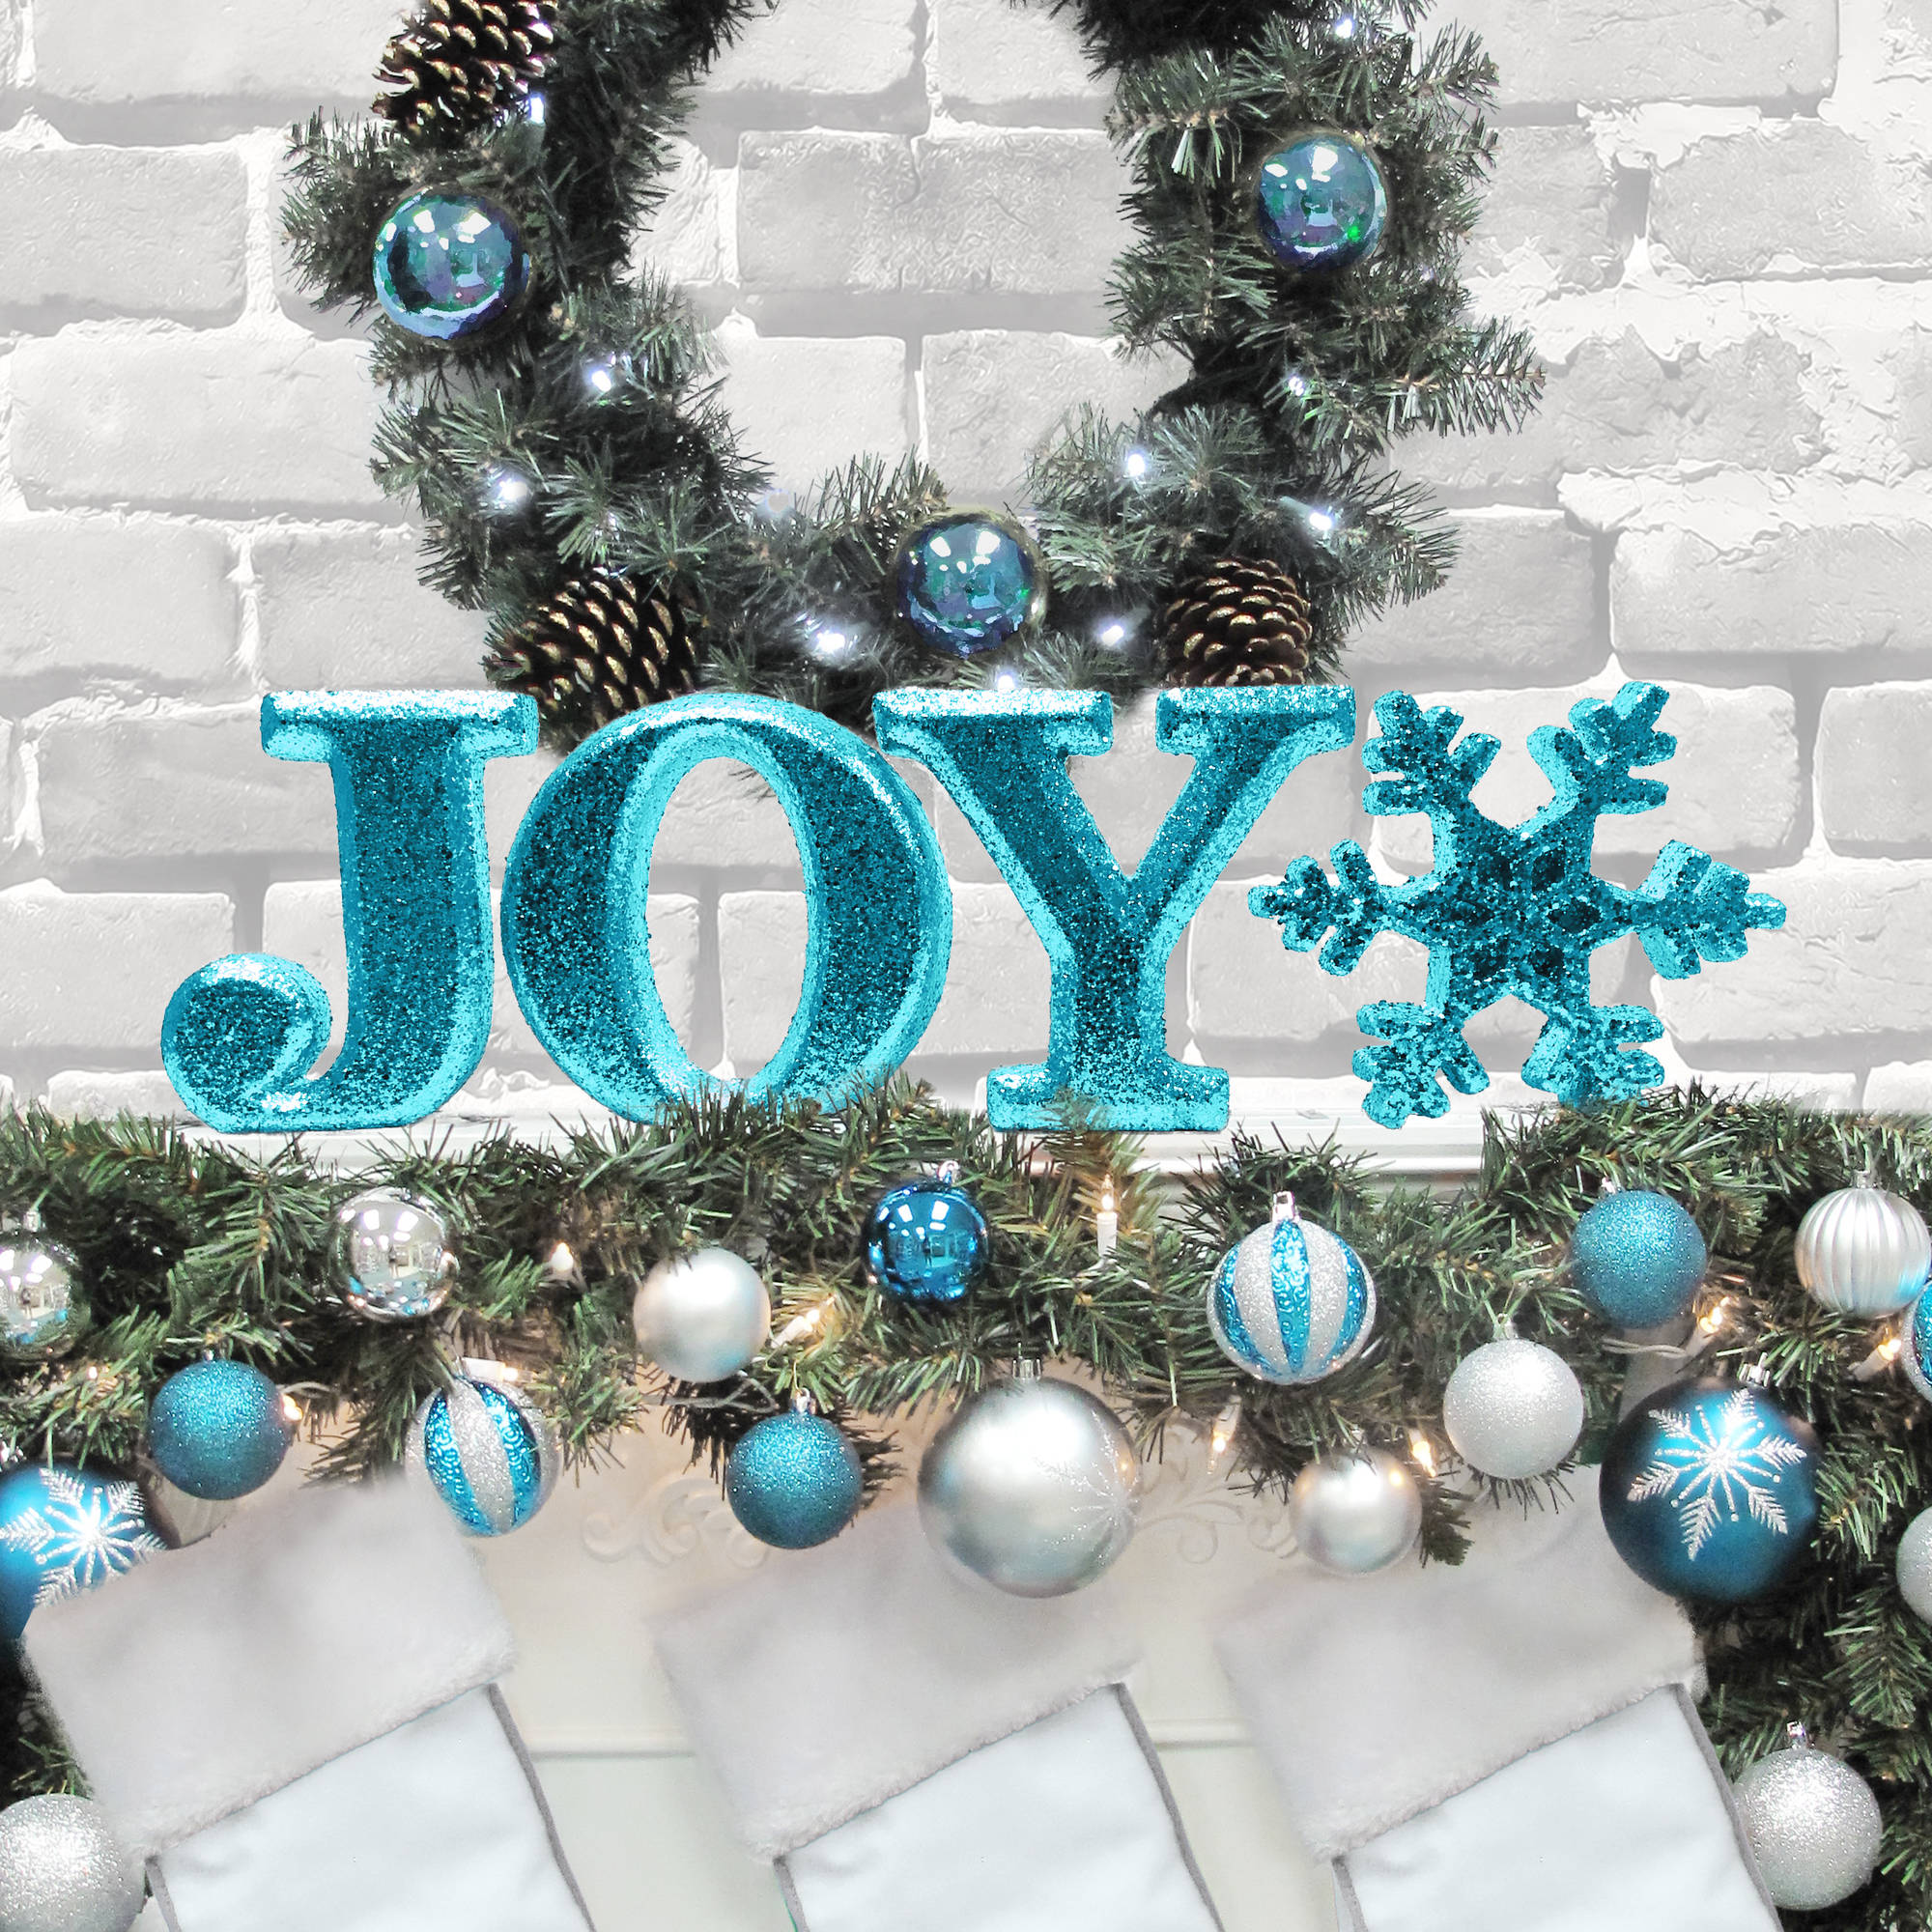 holiday time christmas decor 8 decorative joy letter set glitter teal walmartcom - Walmart Com Christmas Decorations